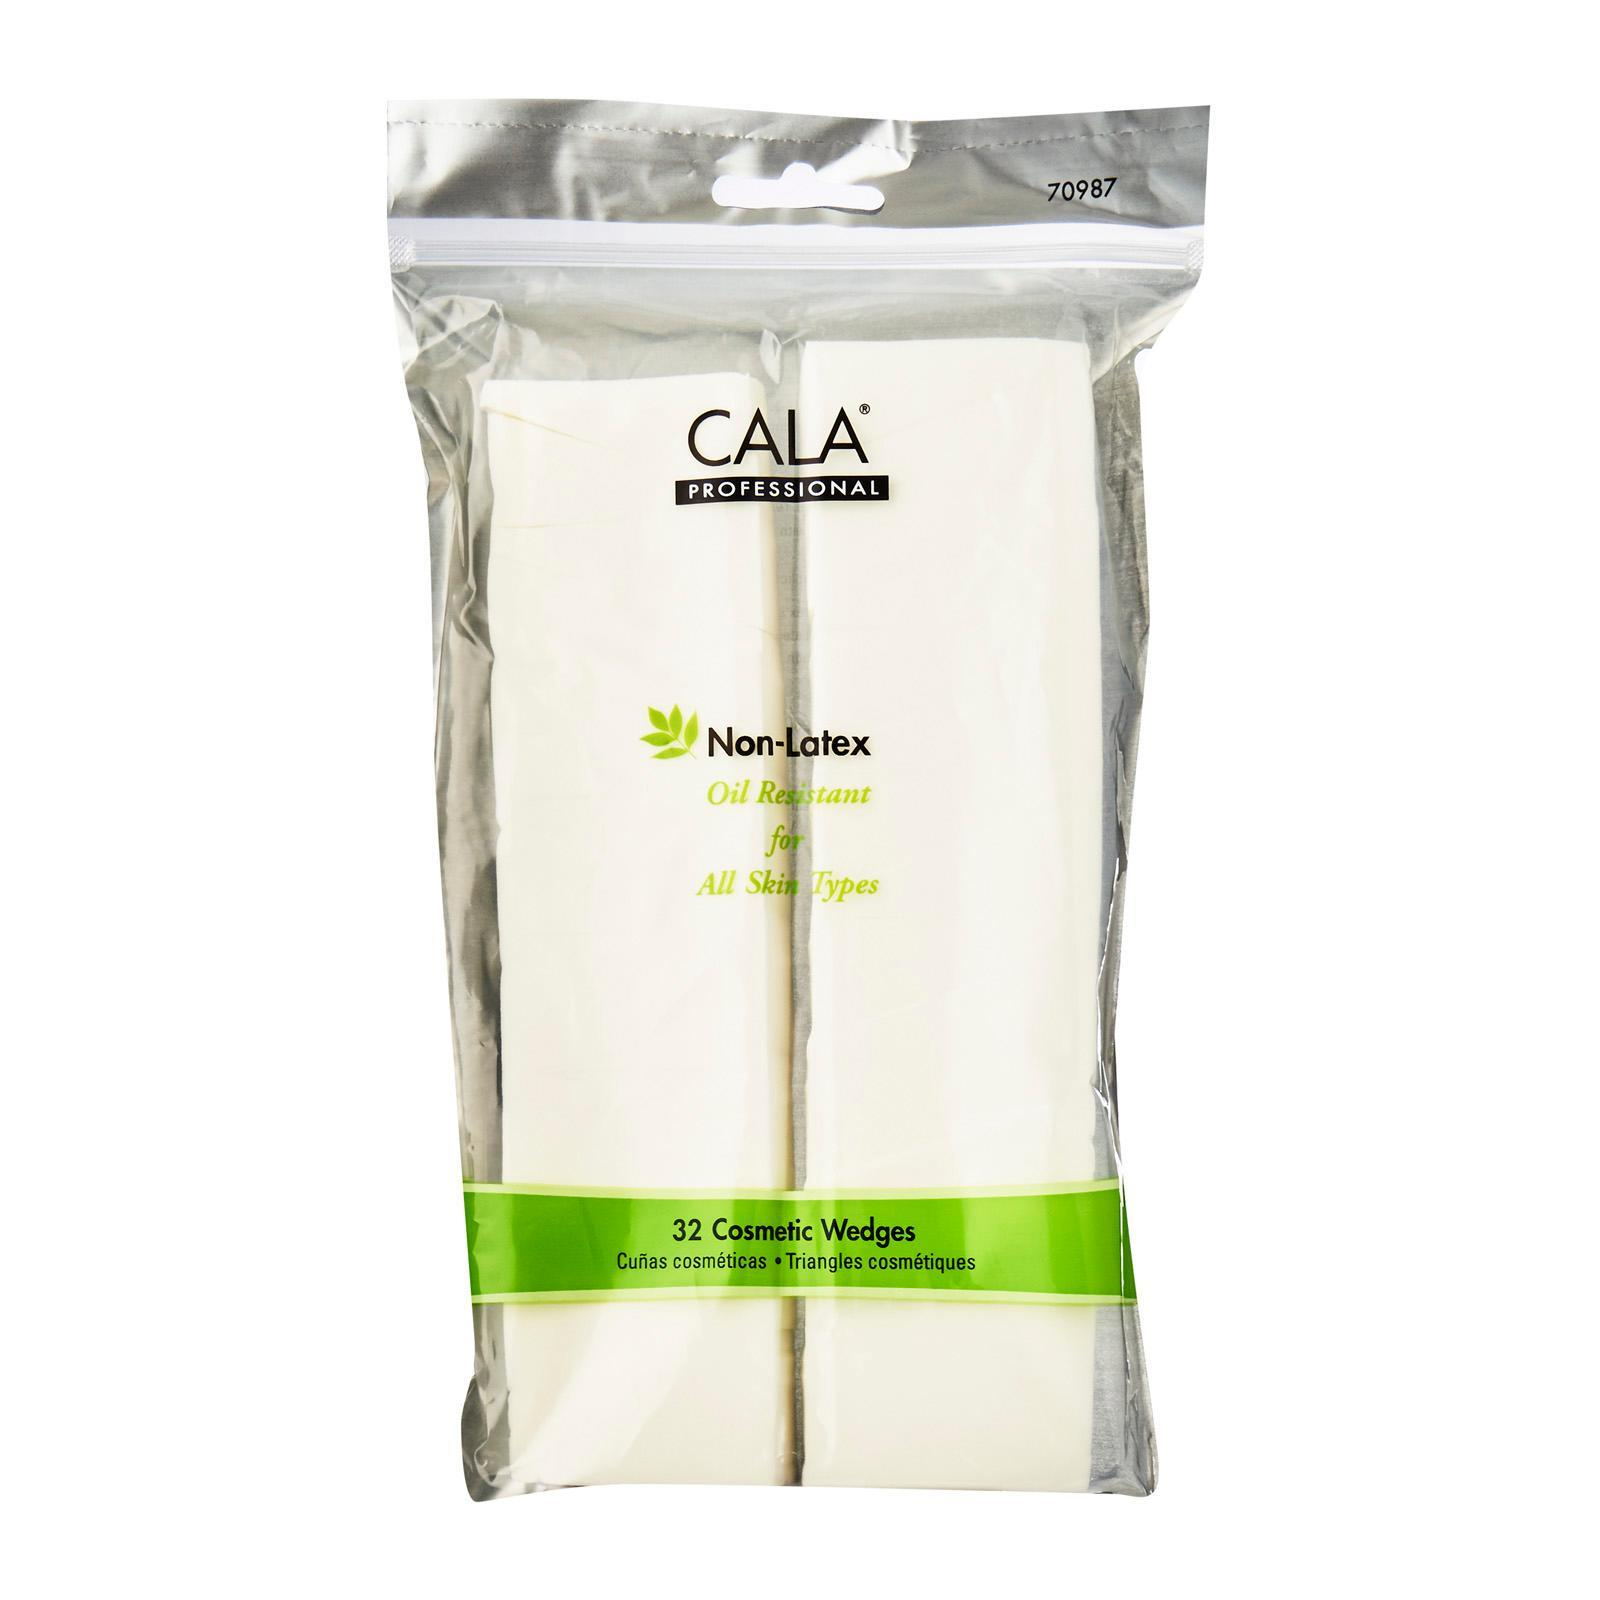 Cala Non-Latex Cosmetic Wedges 32 Piece/Pack